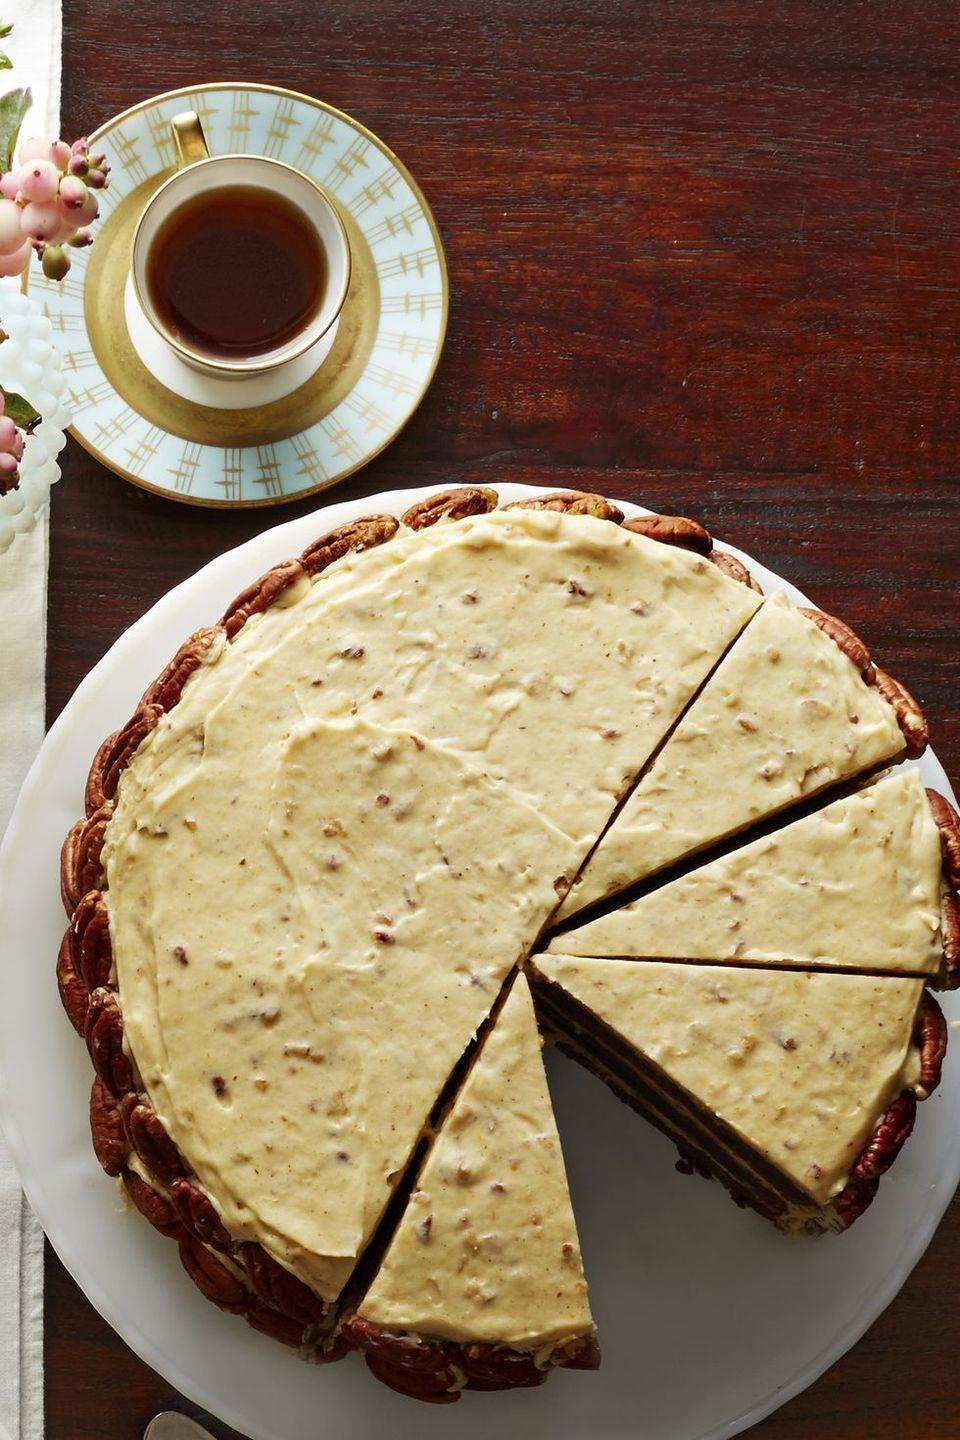 """<p>Gooey chocolate, creamy pumpkin frosting and crunchy pecans make this a more sophisticated sweet for your Halloween soirée.</p><p><em><a href=""""https://www.goodhousekeeping.com/food-recipes/a16154/chocolate-brown-sugar-butter-cake-spiced-pumpkin-frosting-recipe-clx1114/"""" rel=""""nofollow noopener"""" target=""""_blank"""" data-ylk=""""slk:Get the recipe for Chocolate Brown Sugar Butter Cake with Spiced Pumpkin Frosting »"""" class=""""link rapid-noclick-resp"""">Get the recipe for Chocolate Brown Sugar Butter Cake with Spiced Pumpkin Frosting »</a></em></p><p><strong>RELATED: </strong><a href=""""https://www.goodhousekeeping.com/food-recipes/dessert/g32937055/fall-cakes/"""" rel=""""nofollow noopener"""" target=""""_blank"""" data-ylk=""""slk:30 Fall Cake Ideas to Get Even More Extra About Autumn"""" class=""""link rapid-noclick-resp"""">30 Fall Cake Ideas to Get Even More Extra About Autumn</a><br></p>"""